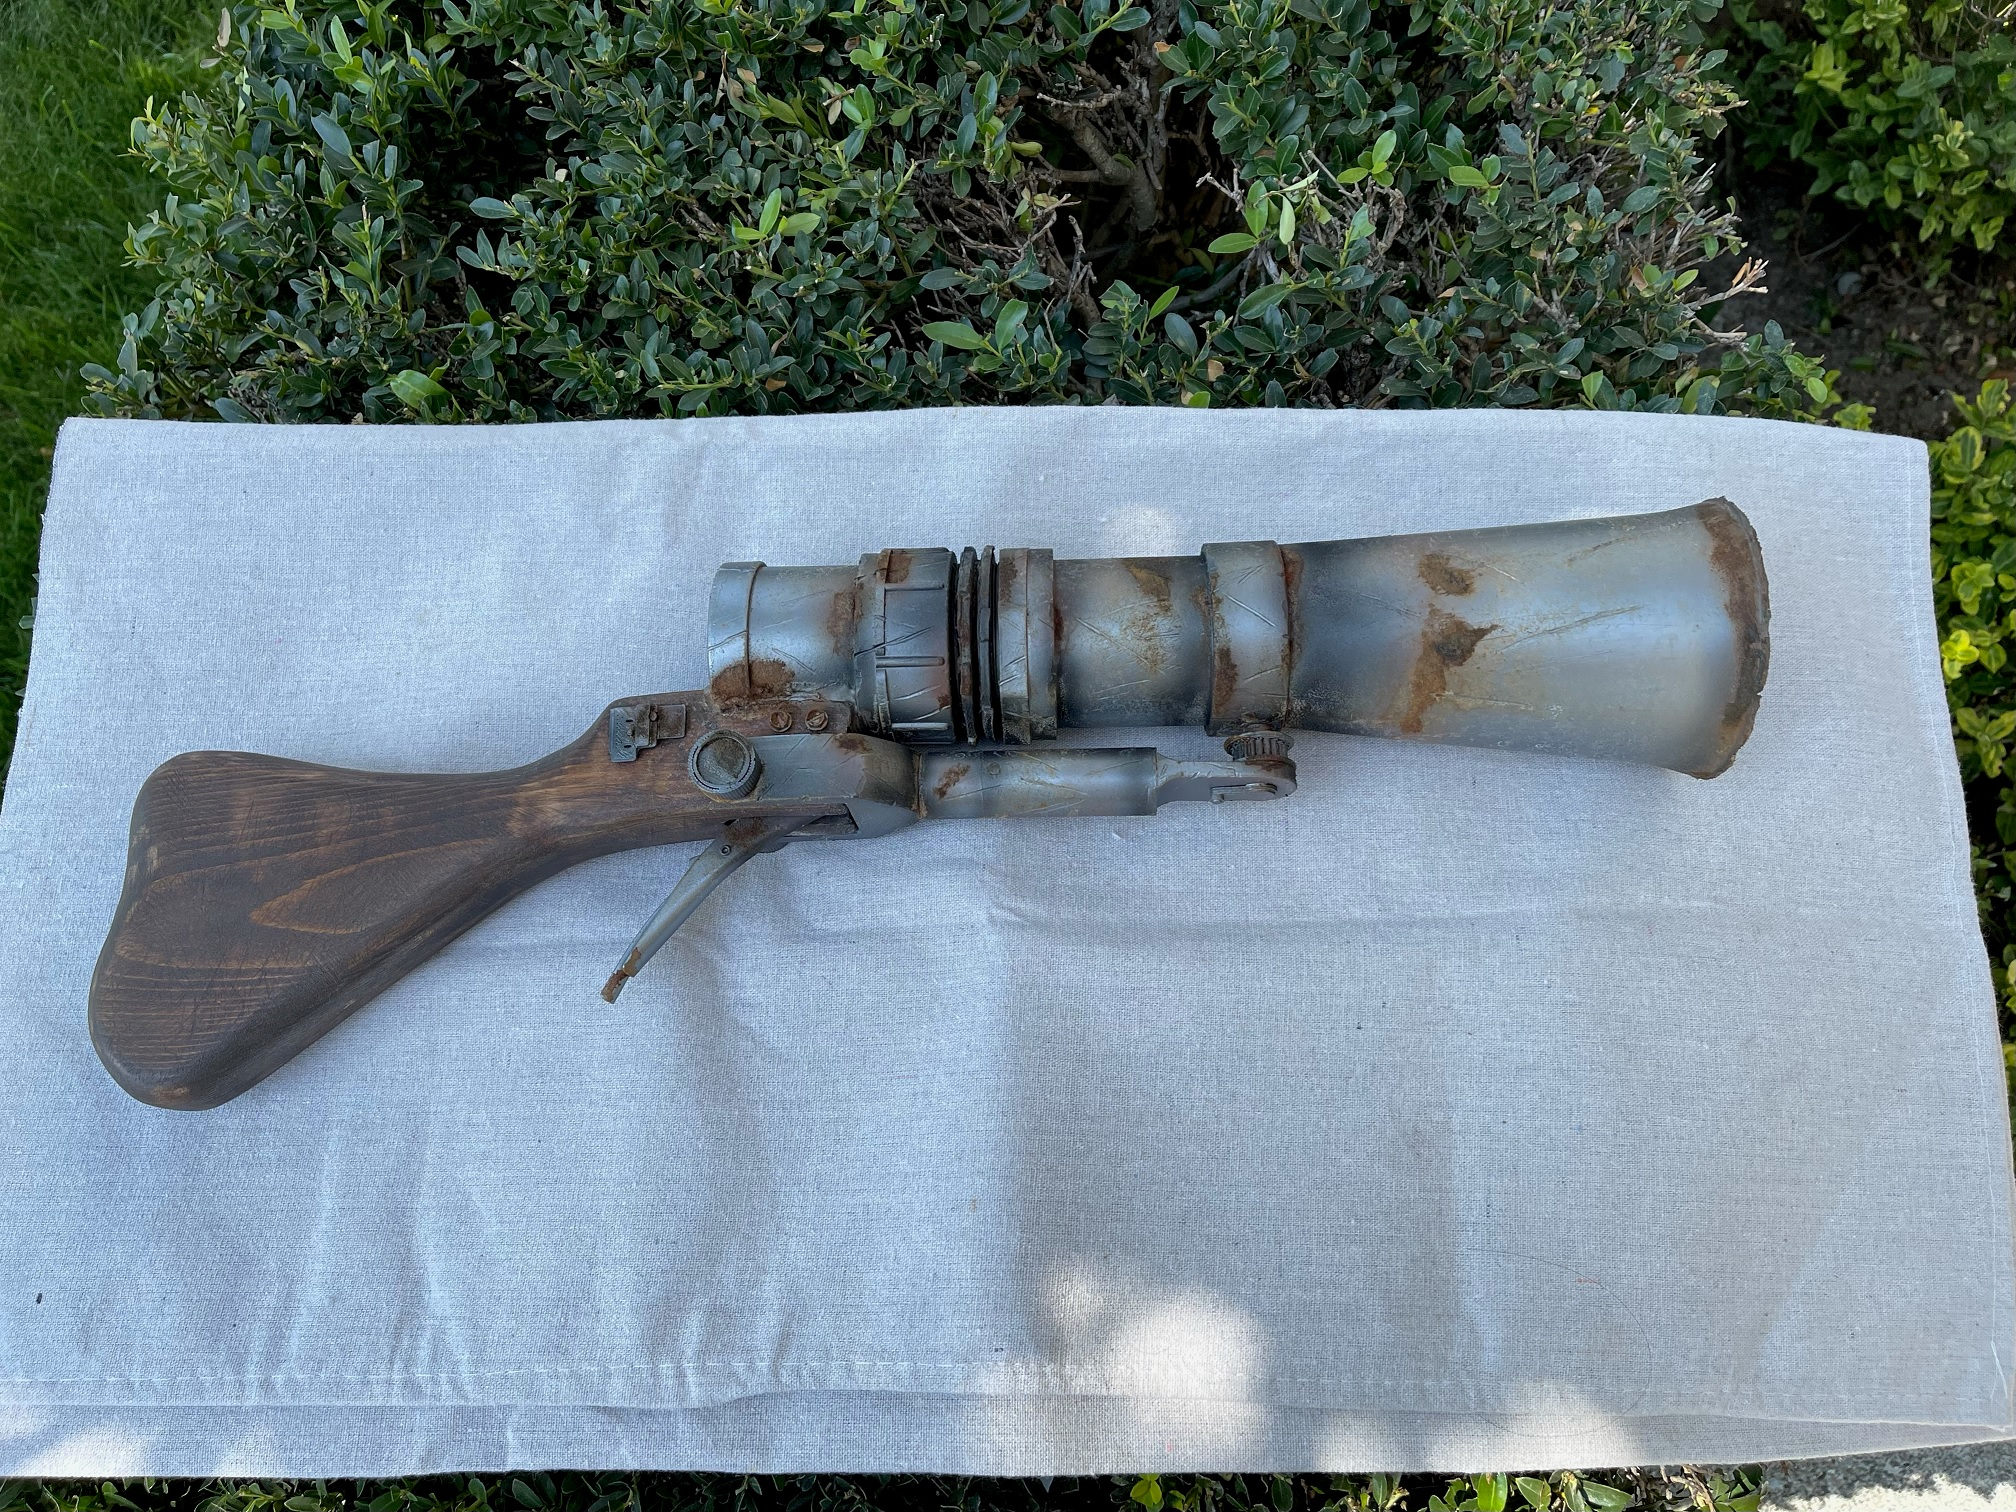 Jawa - ION Rifle - Finished with Rust - Pic 2.jpg